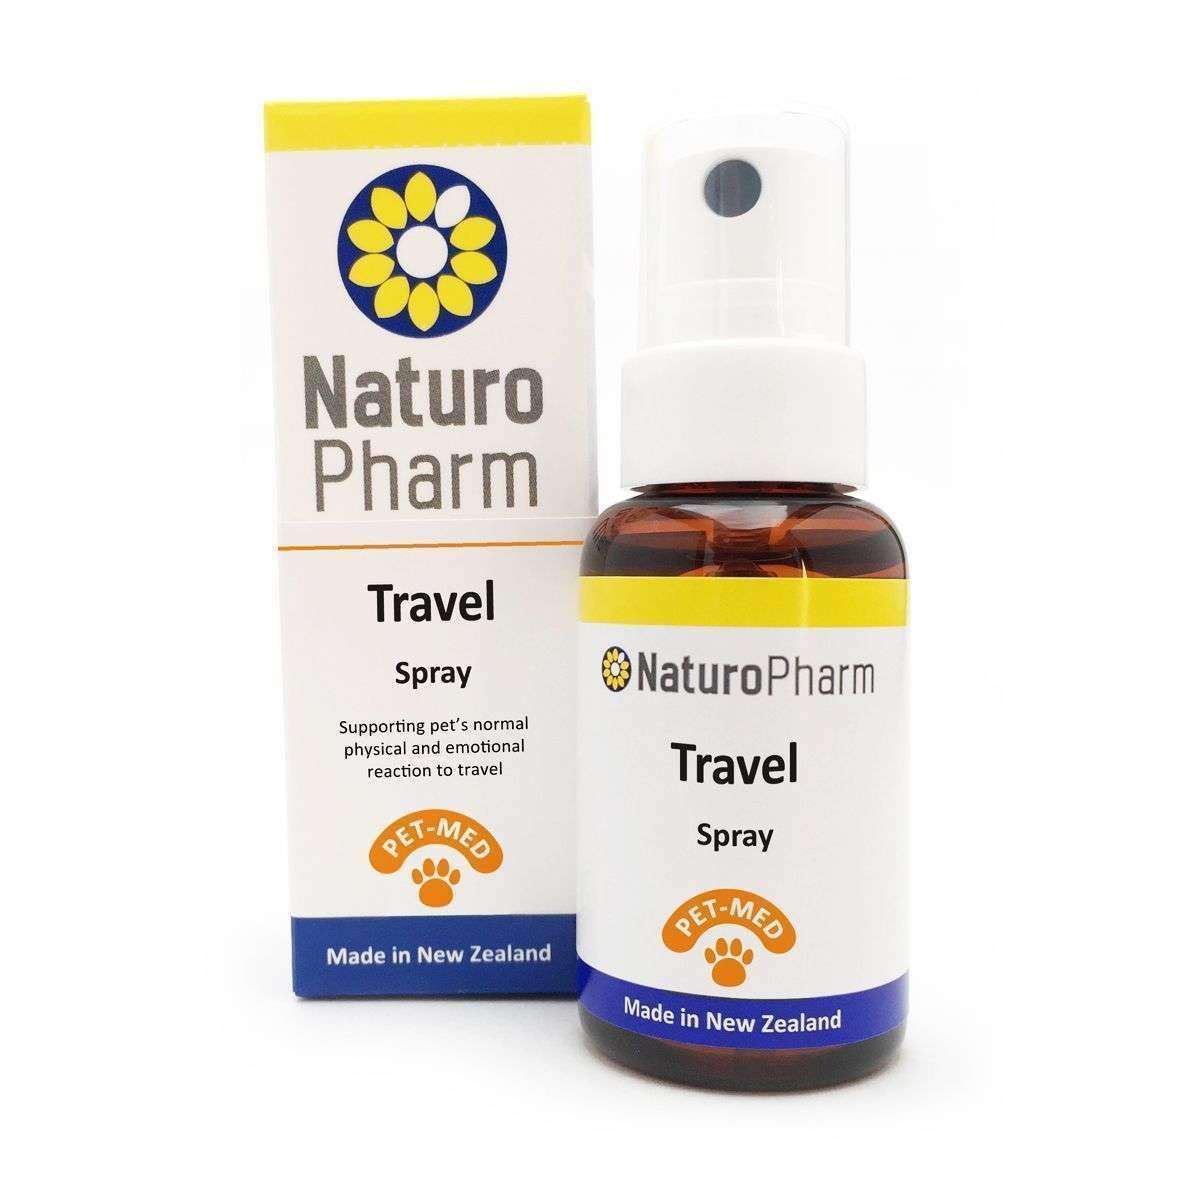 NaturoPharm Pet-Med Pet-Med Travel Spray